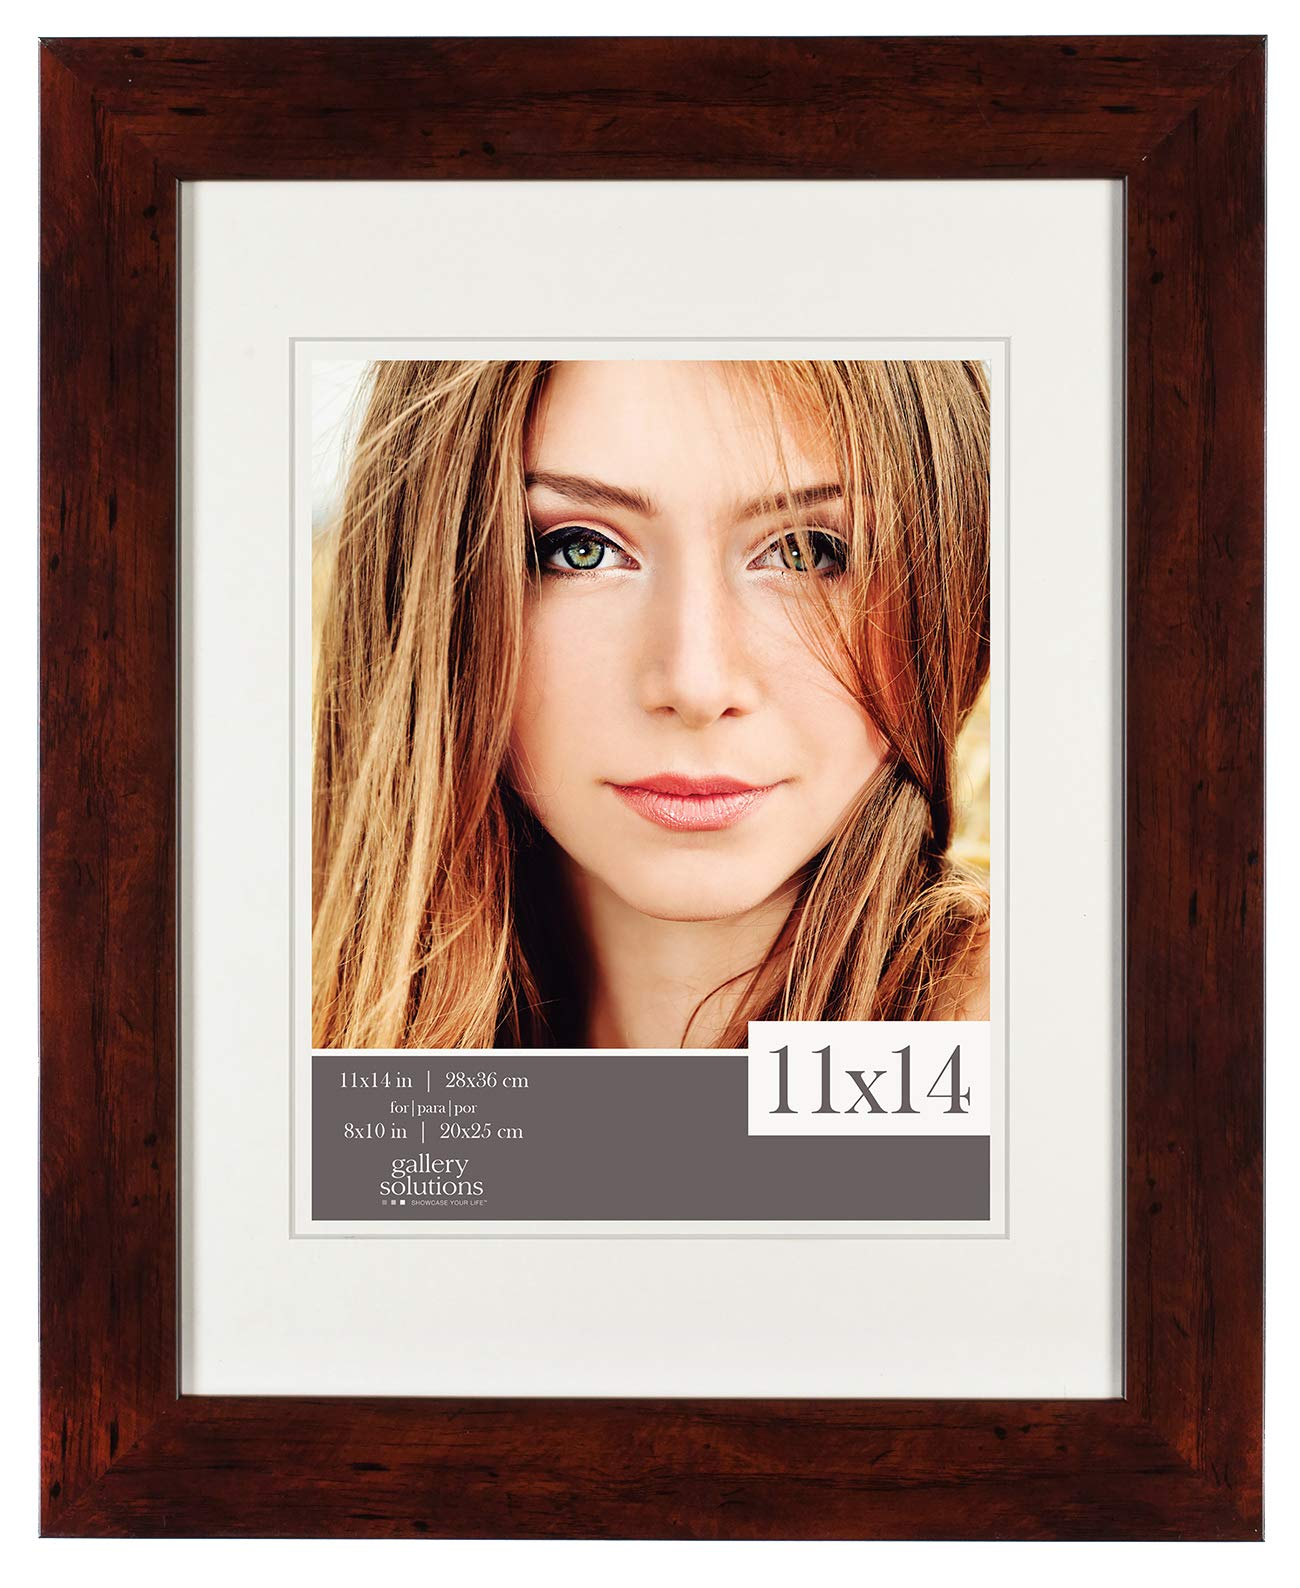 Gallery Solutions 11x14 Walnut Picture Frame with Double White Mat Opening for 8x10 Image, 8 inches x 10 inches, by Gallery Solutions